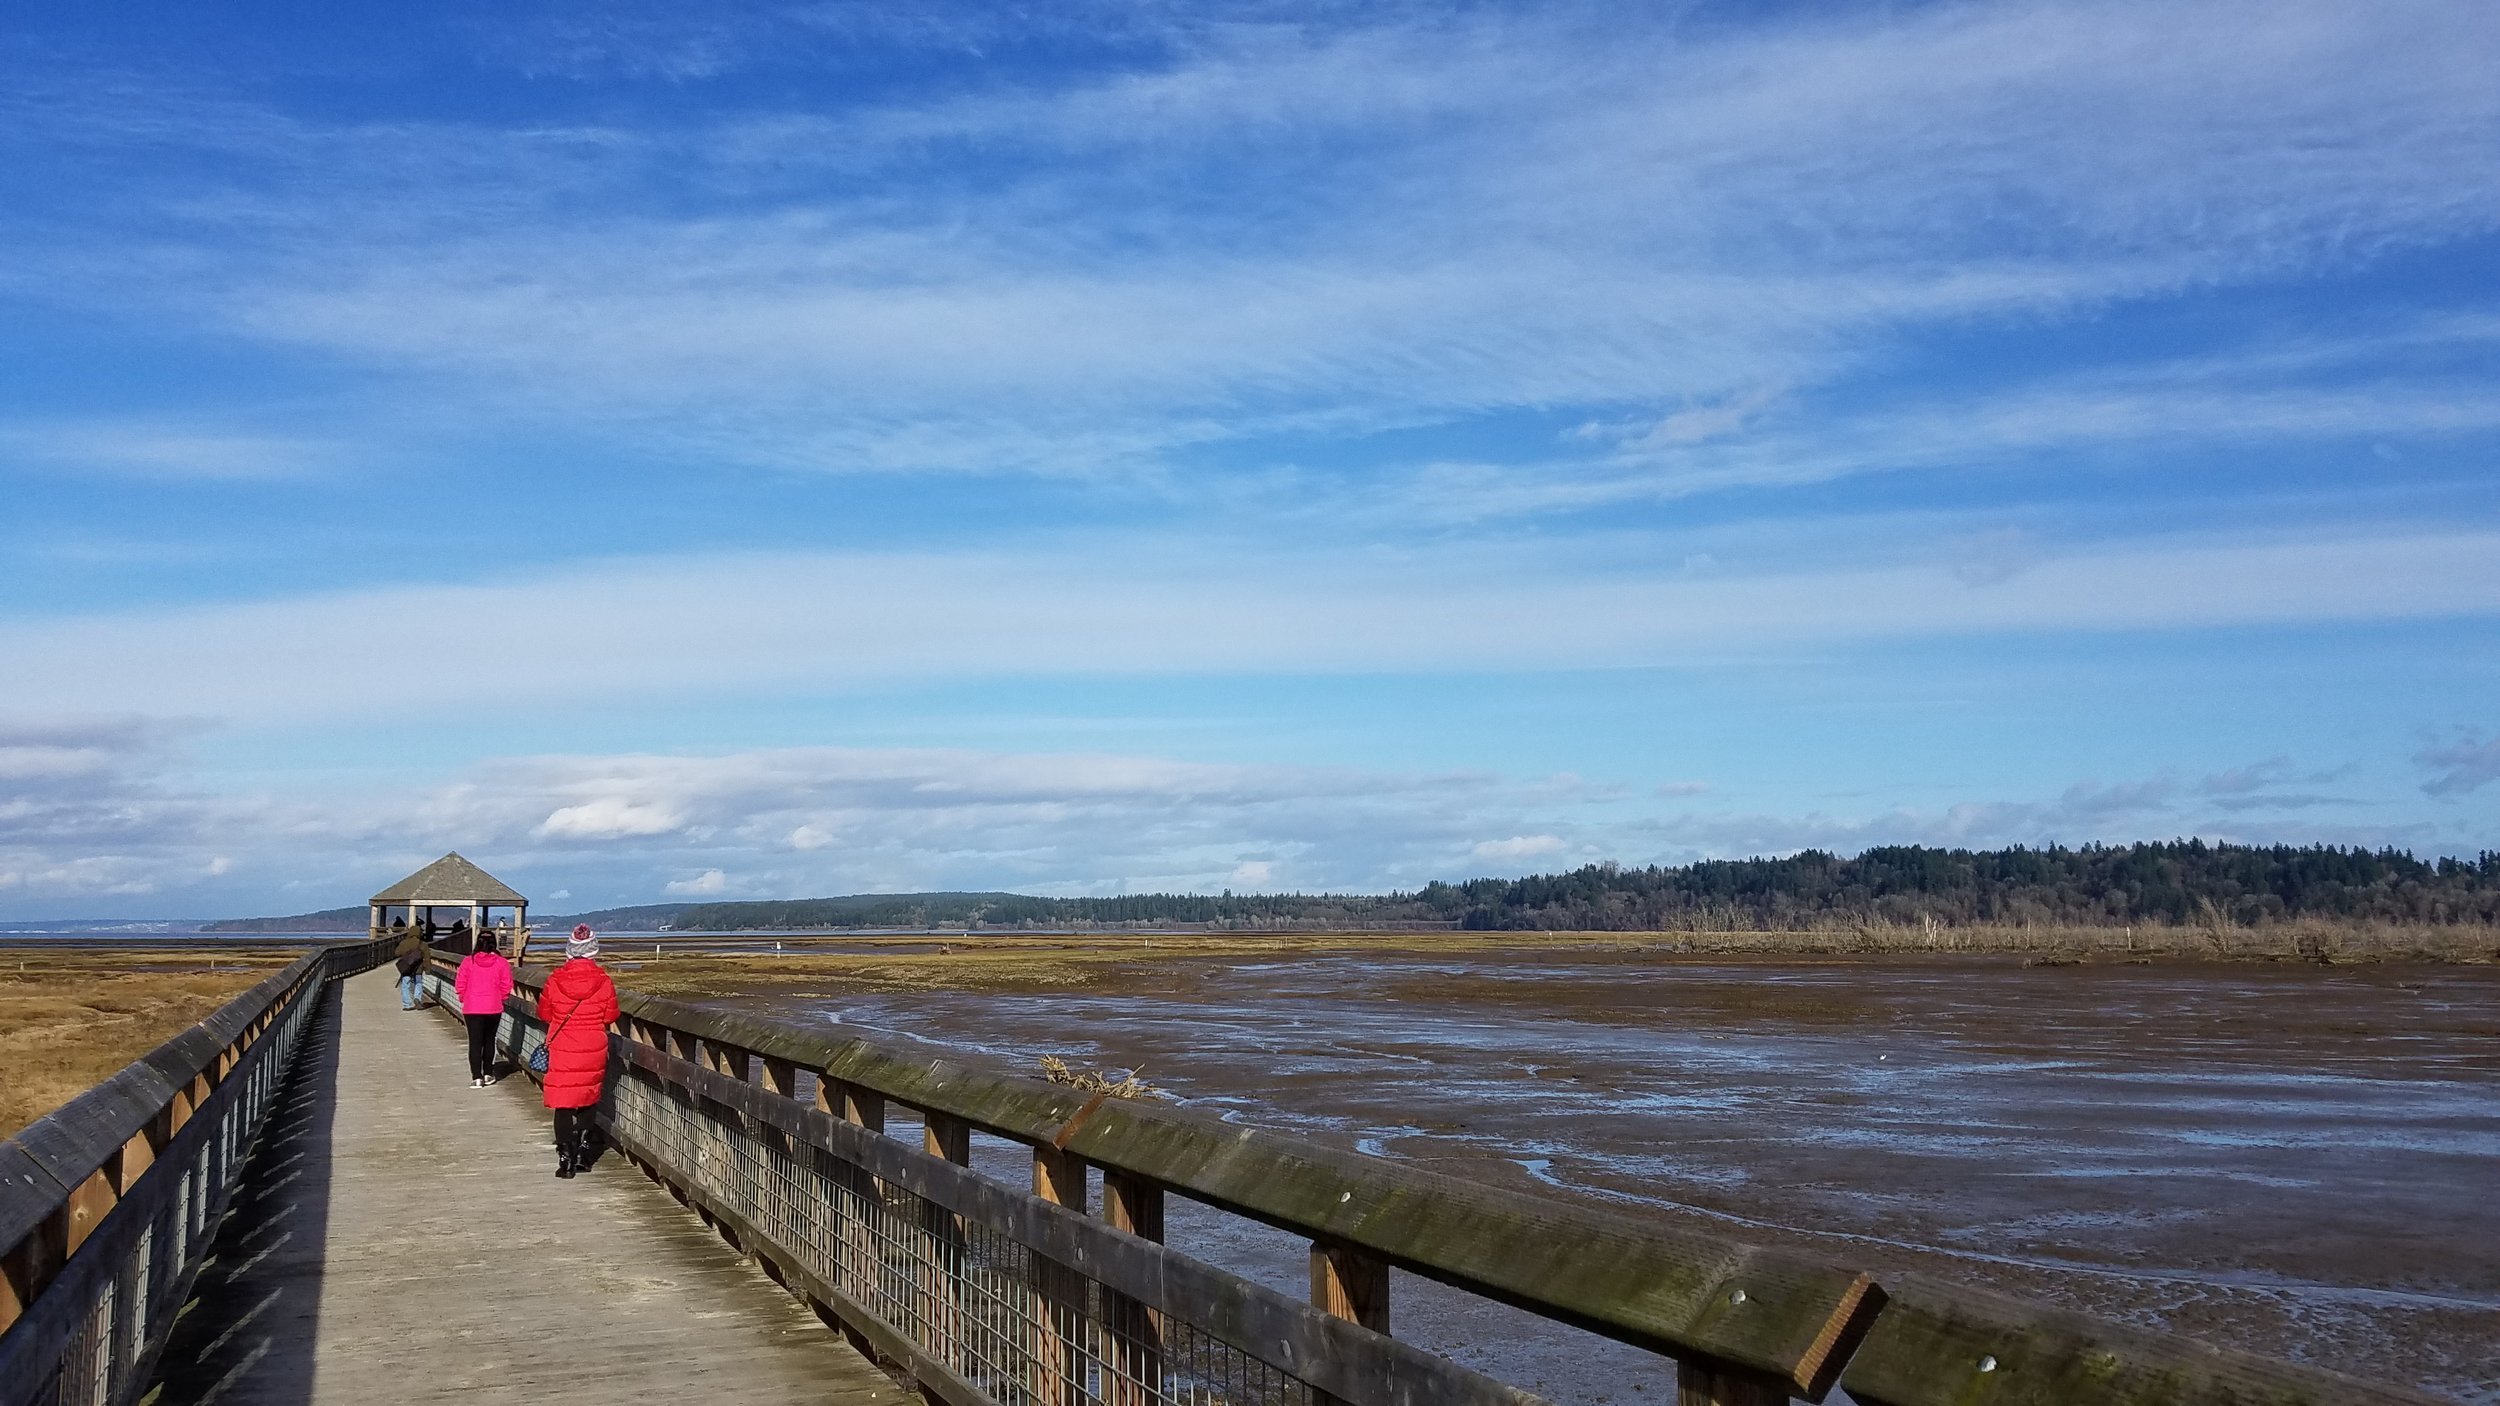 Billy Frank Jr. Nisqually National Wildlife Refuge, to the northeast of Olympia,is one of the best cloud-viewing places in the South Sound. The boardwalk gives you the feeling you're walking into the sky.